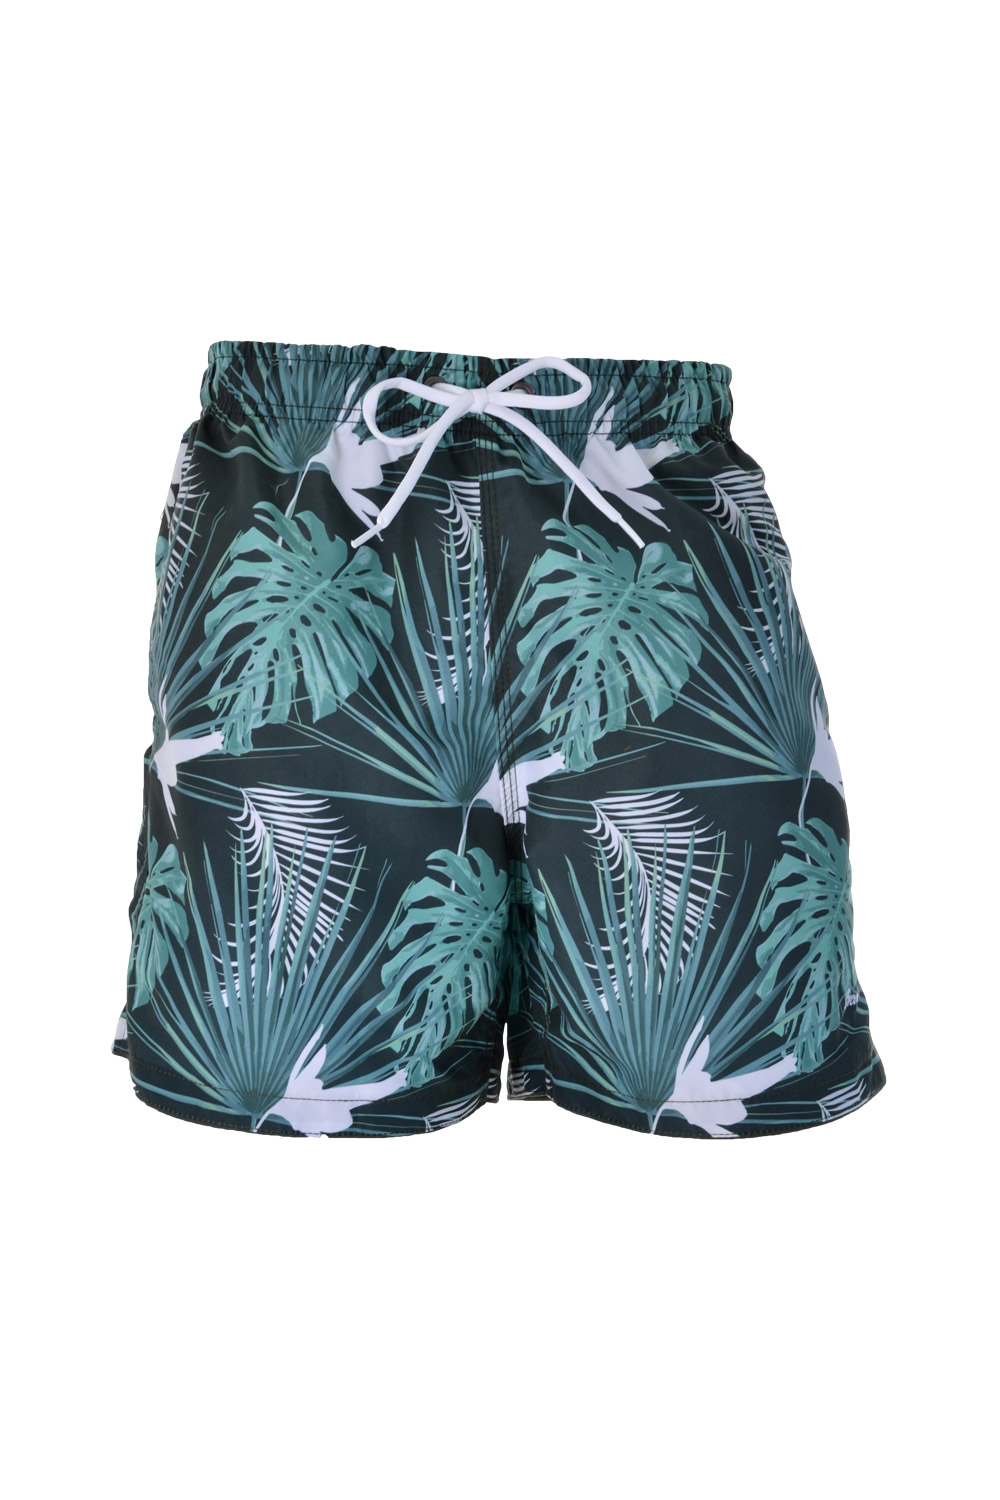 SHORTS MARINE POLIESTER CONCEPTS ESTAMPA MOSTERA